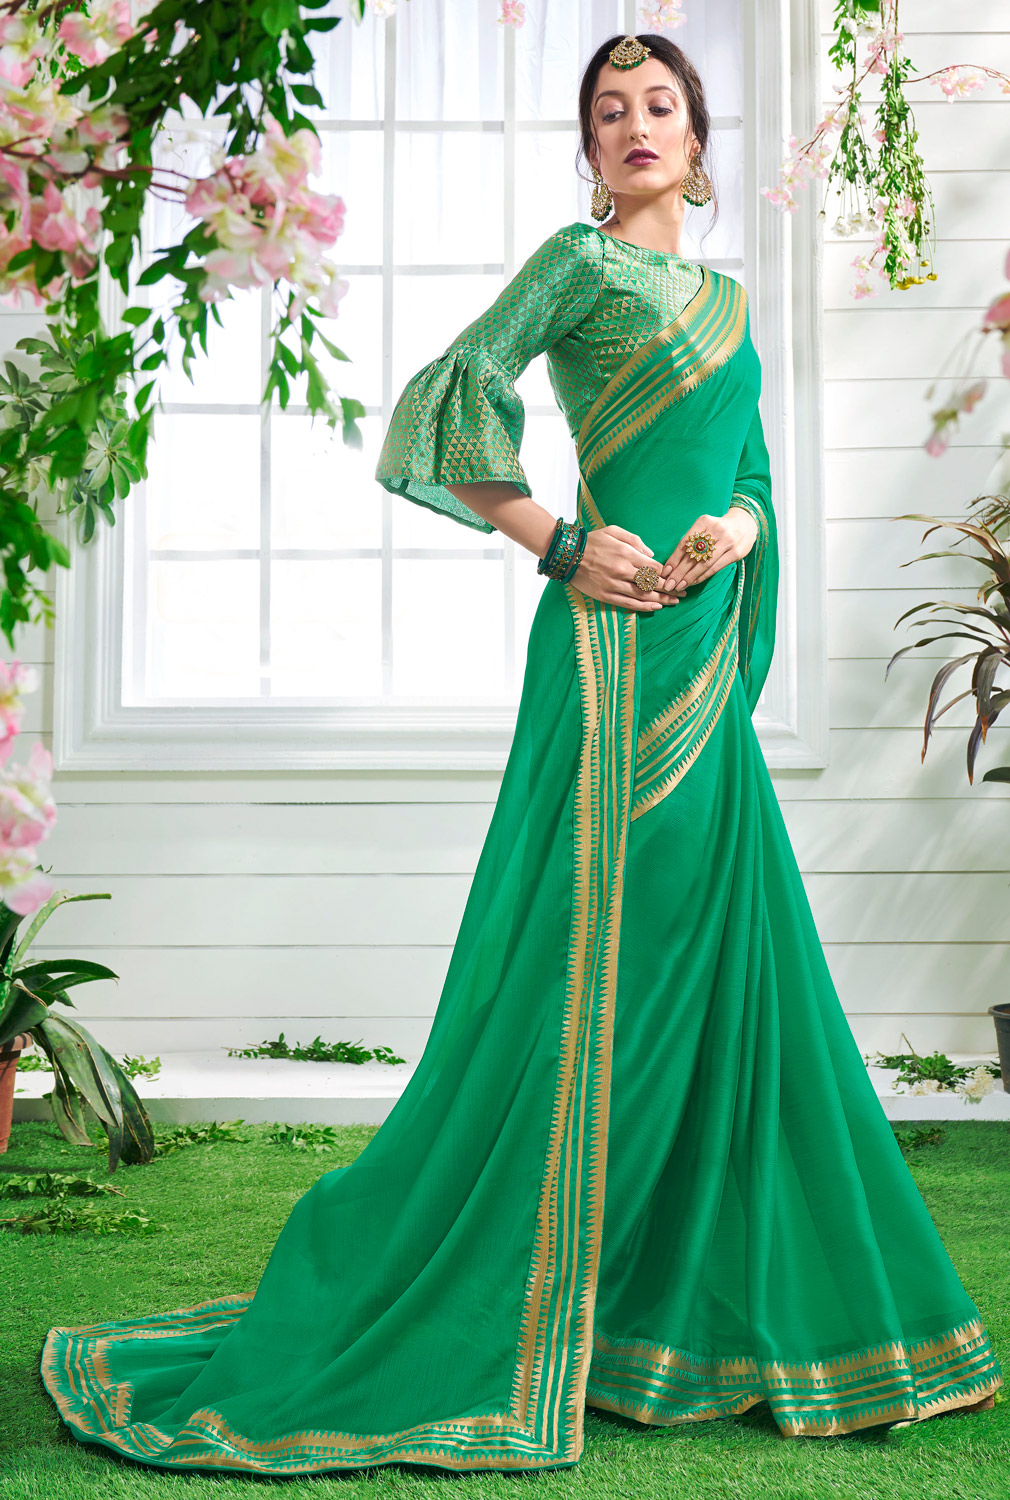 Rejuvinating Green Colored Designer Party Wear Chiffon Saree.